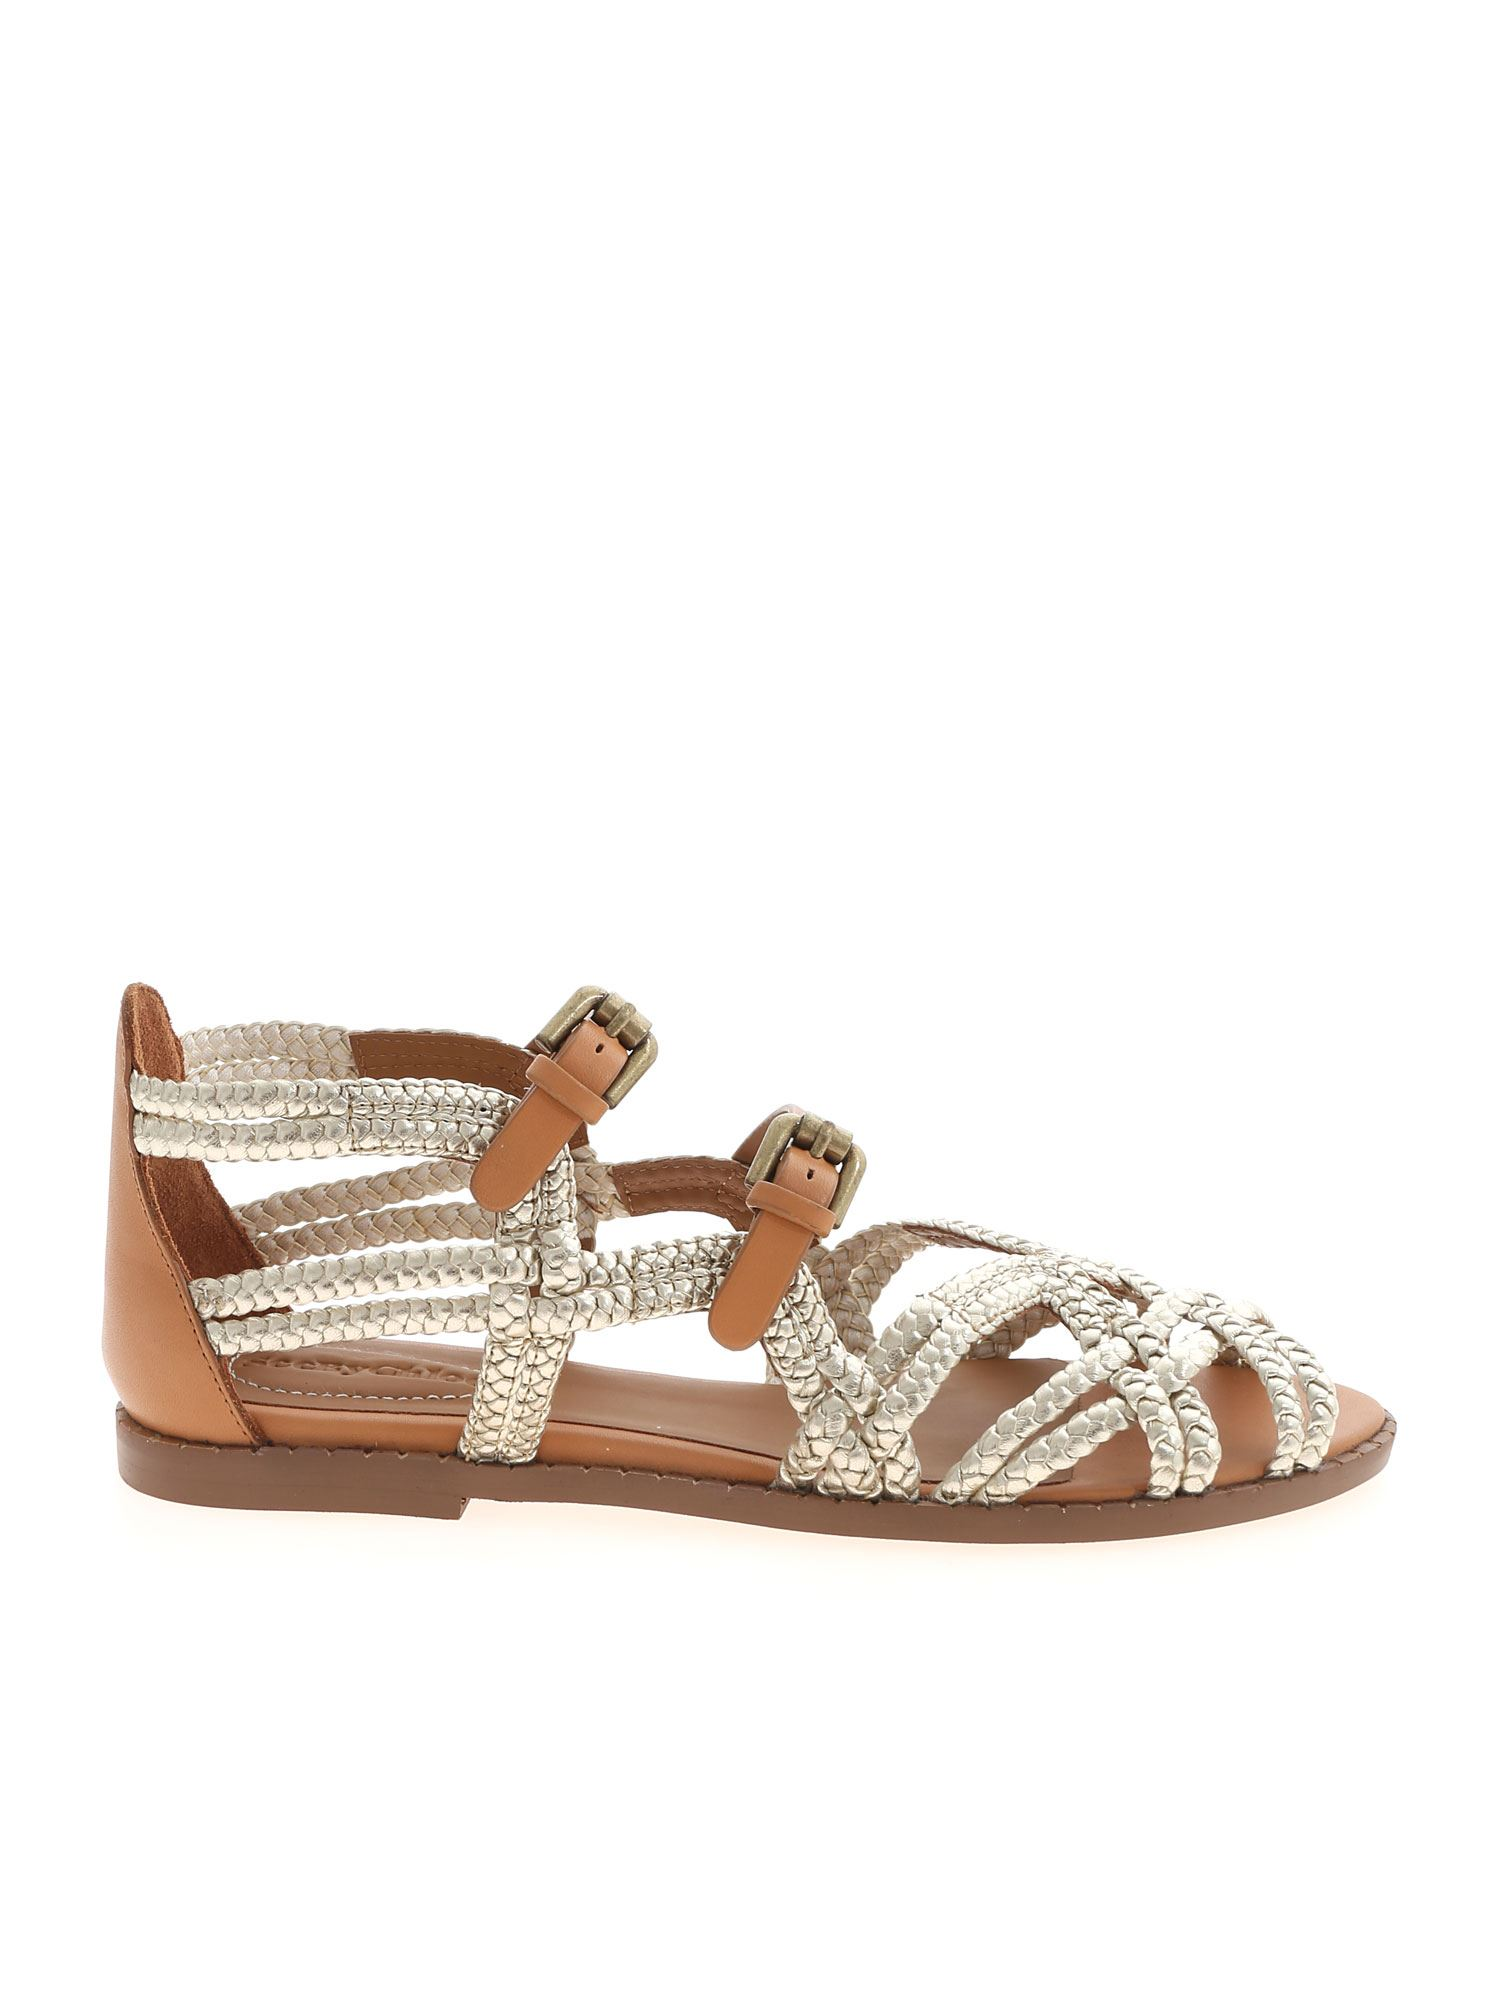 See By Chloé ADRIA SANDALS IN PLATINUM AND LEATHER COLOR